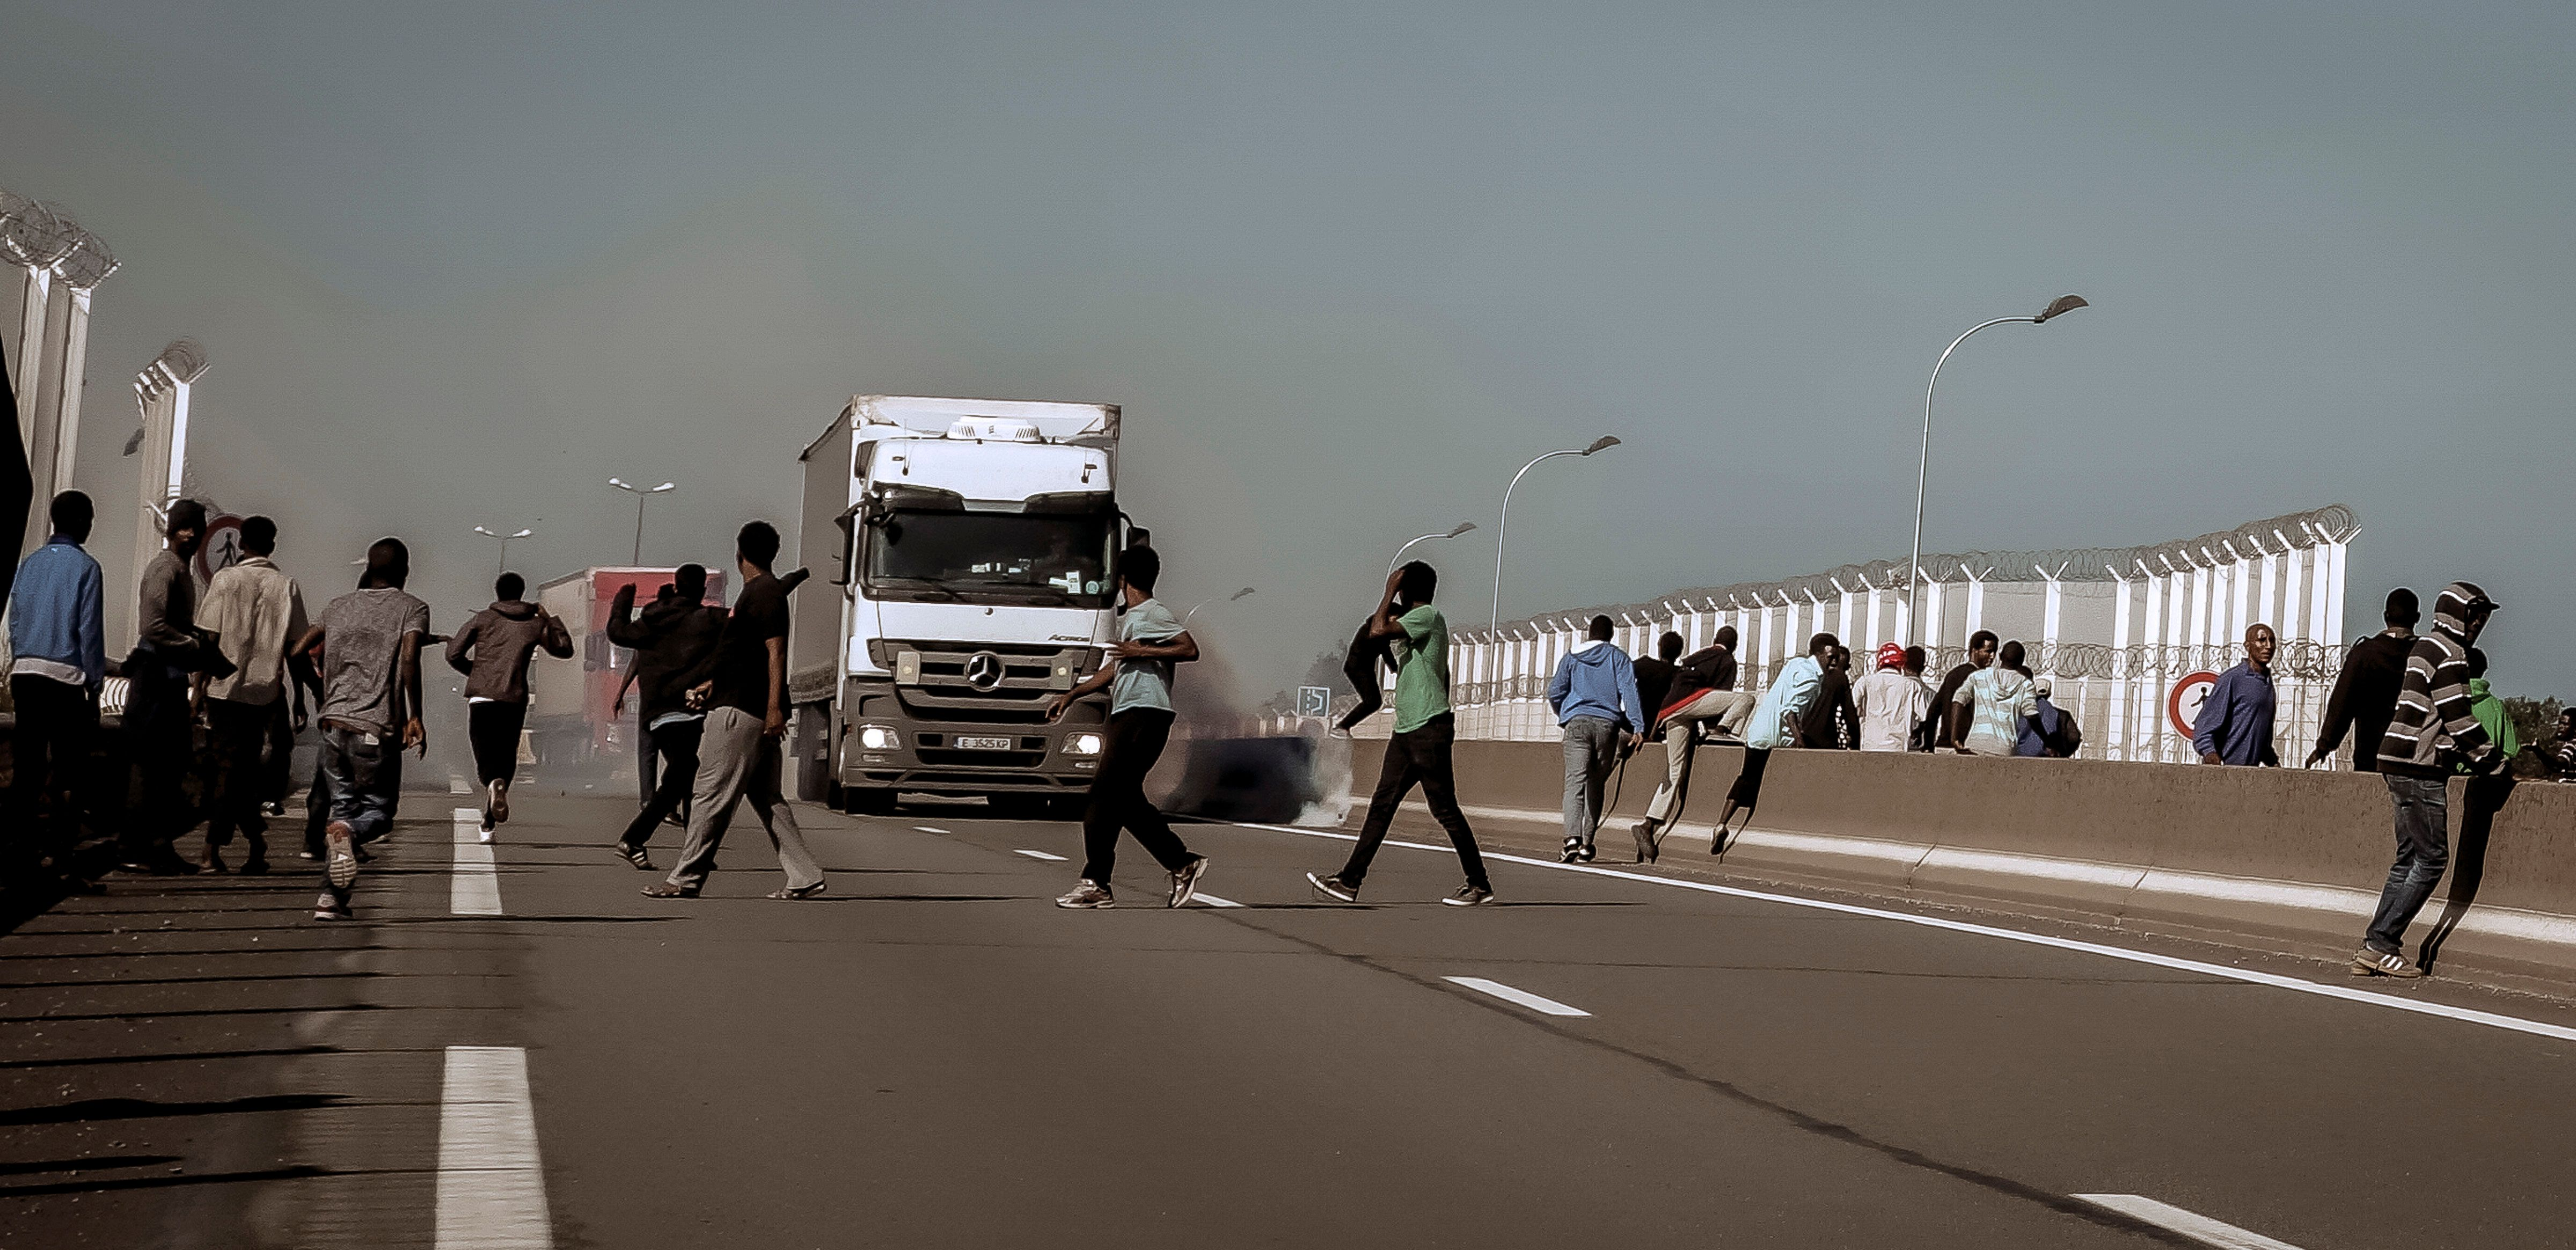 An Eritrean migrant was killed and his wife was injured near Calais after being struck by a car as dozens...